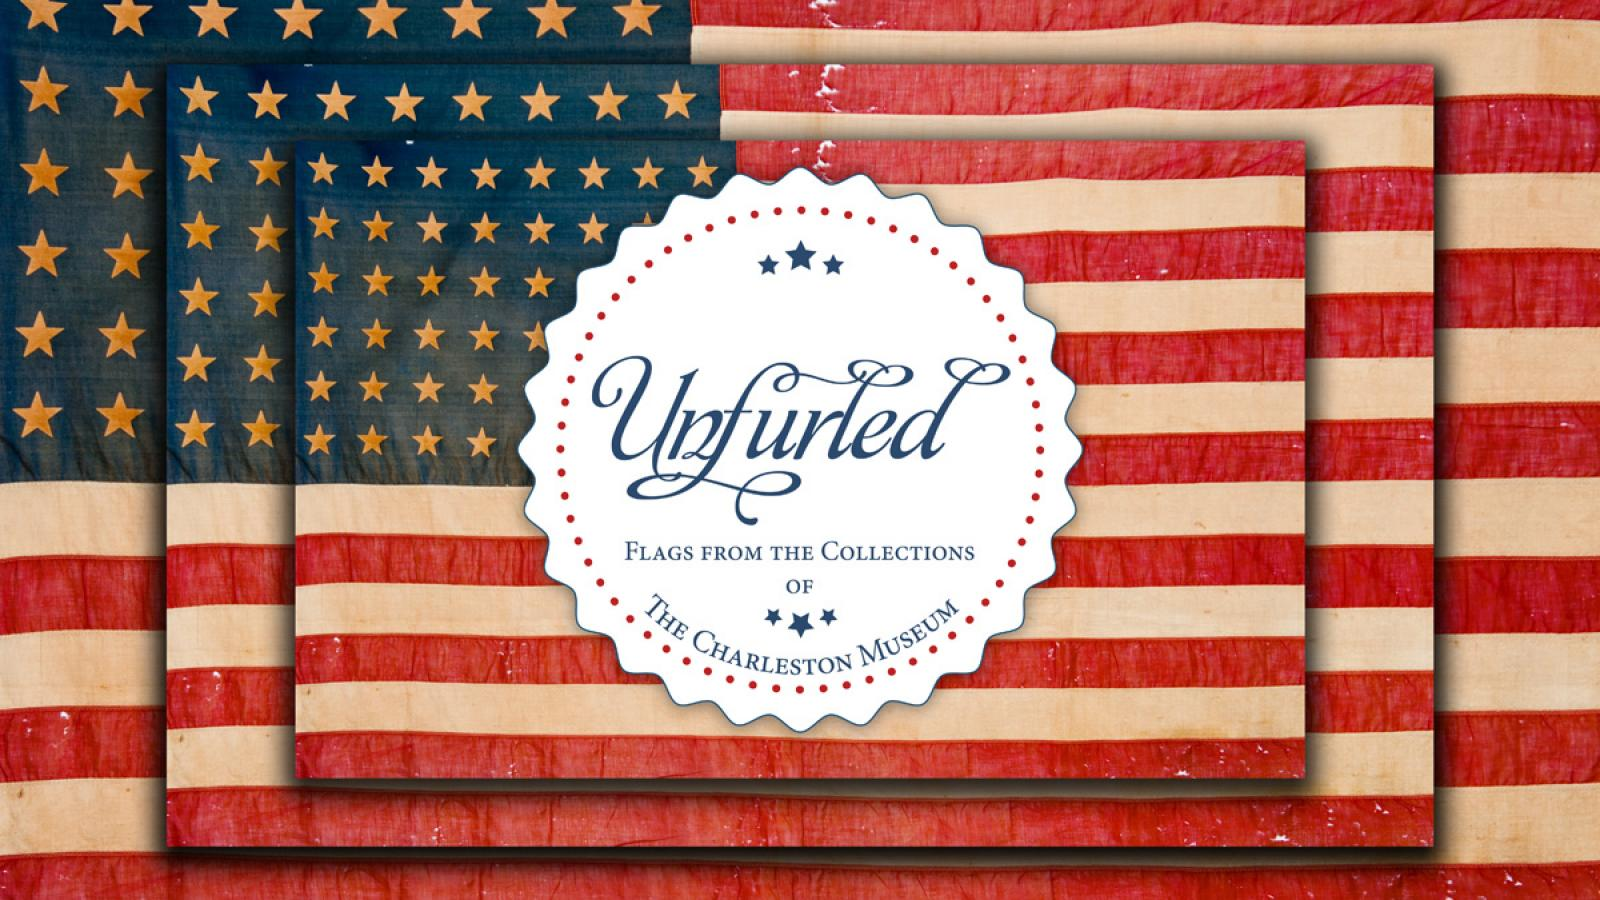 """Unfurled"" at Charleston Museum"